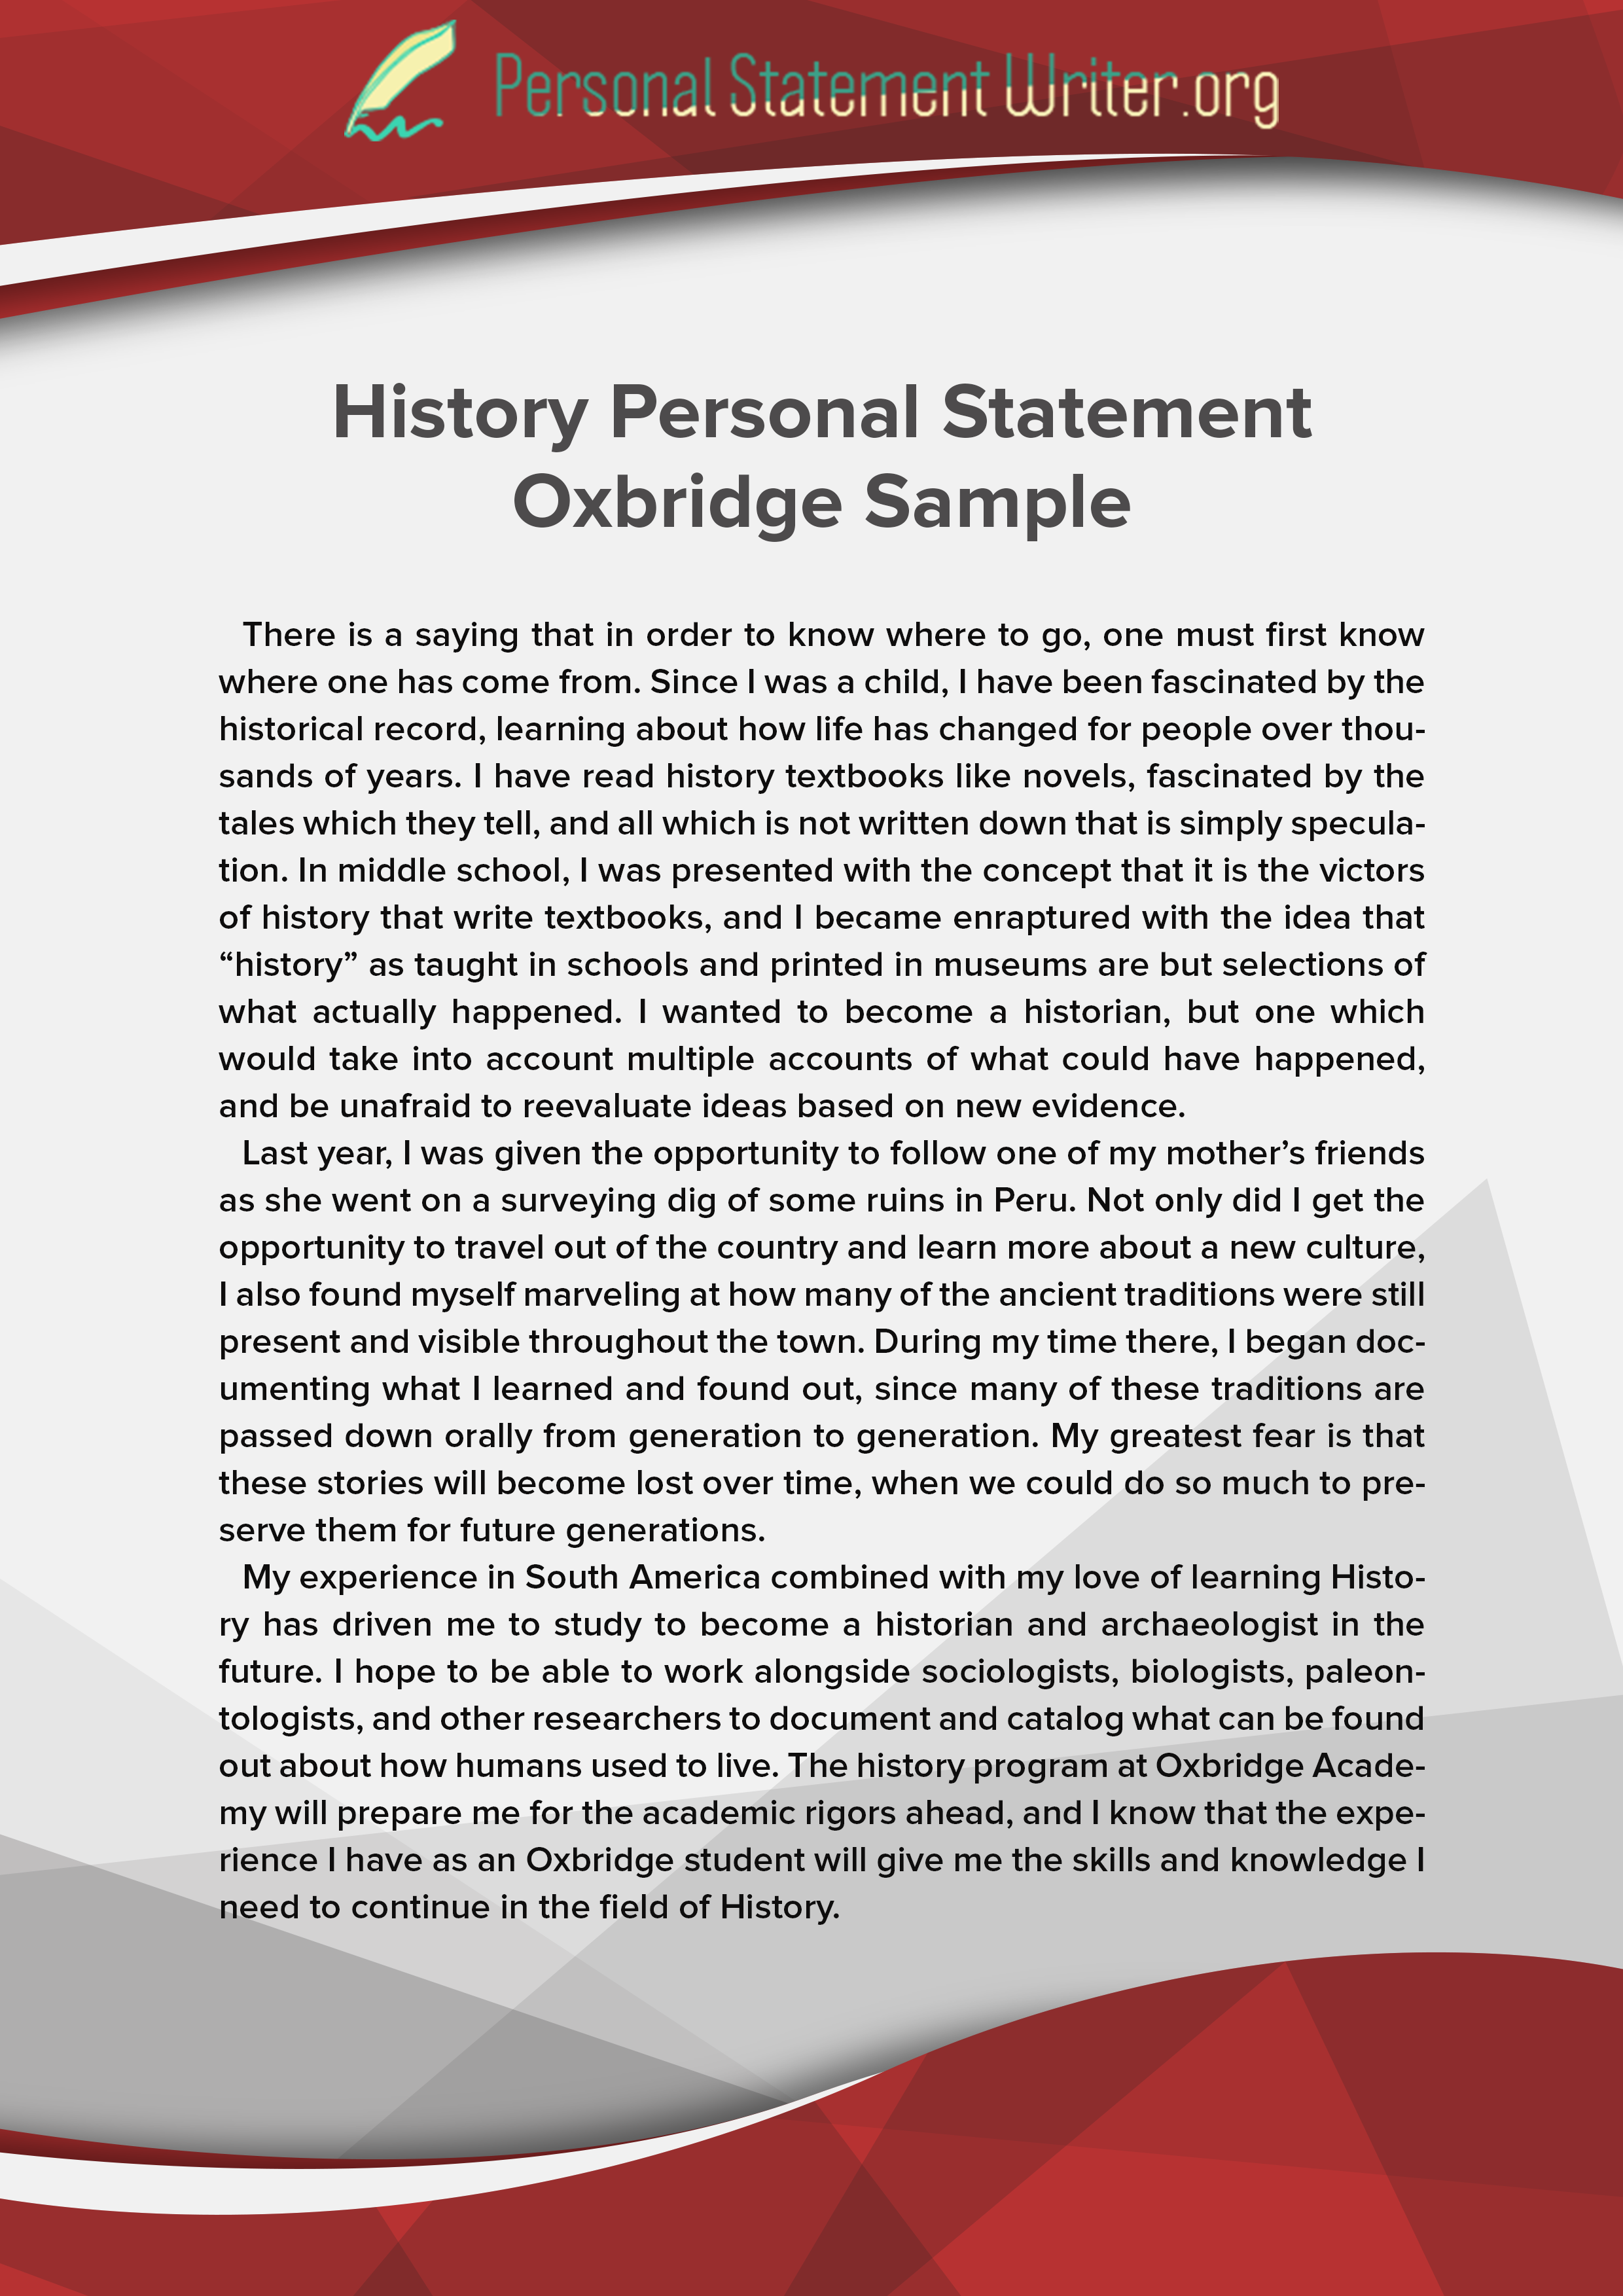 history personal statement oxbridge sample